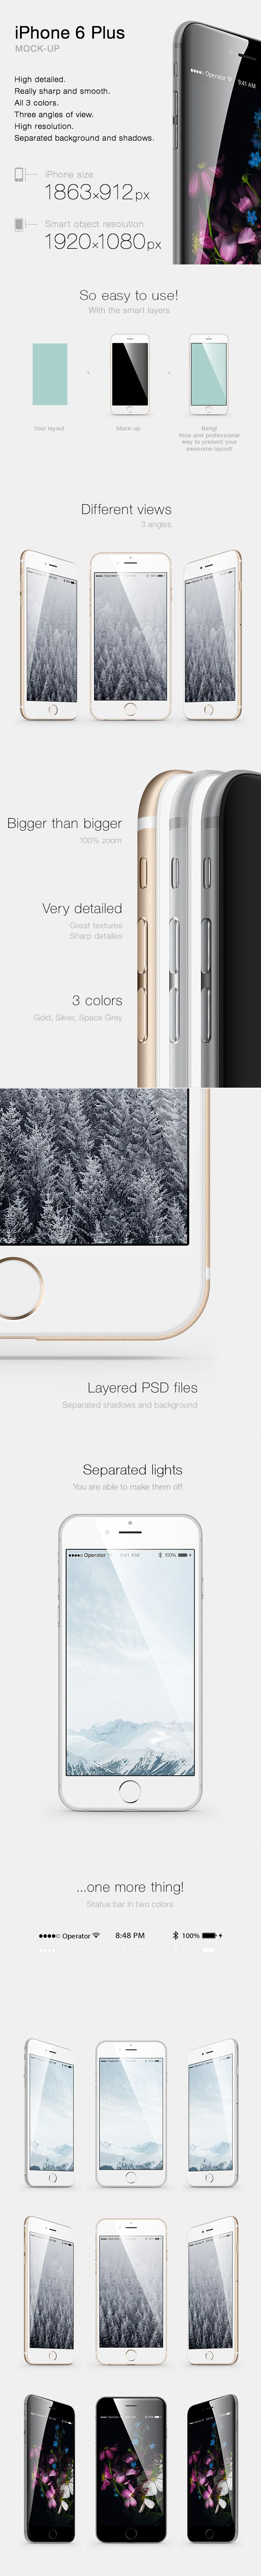 iPhone 6 Plus | #freebie #mockup